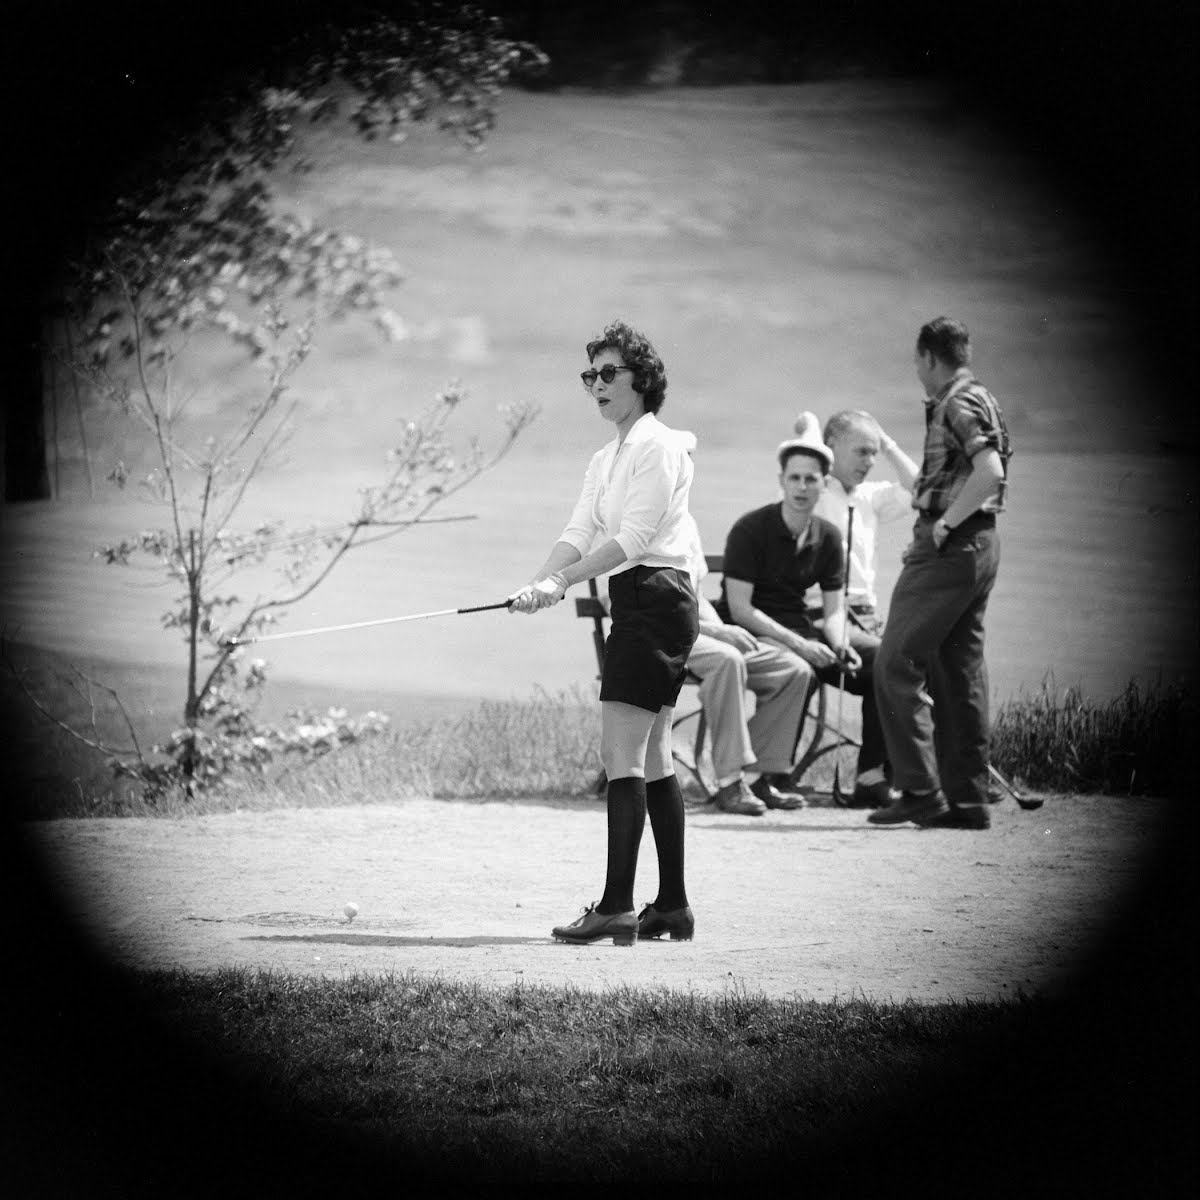 Woman In Golf